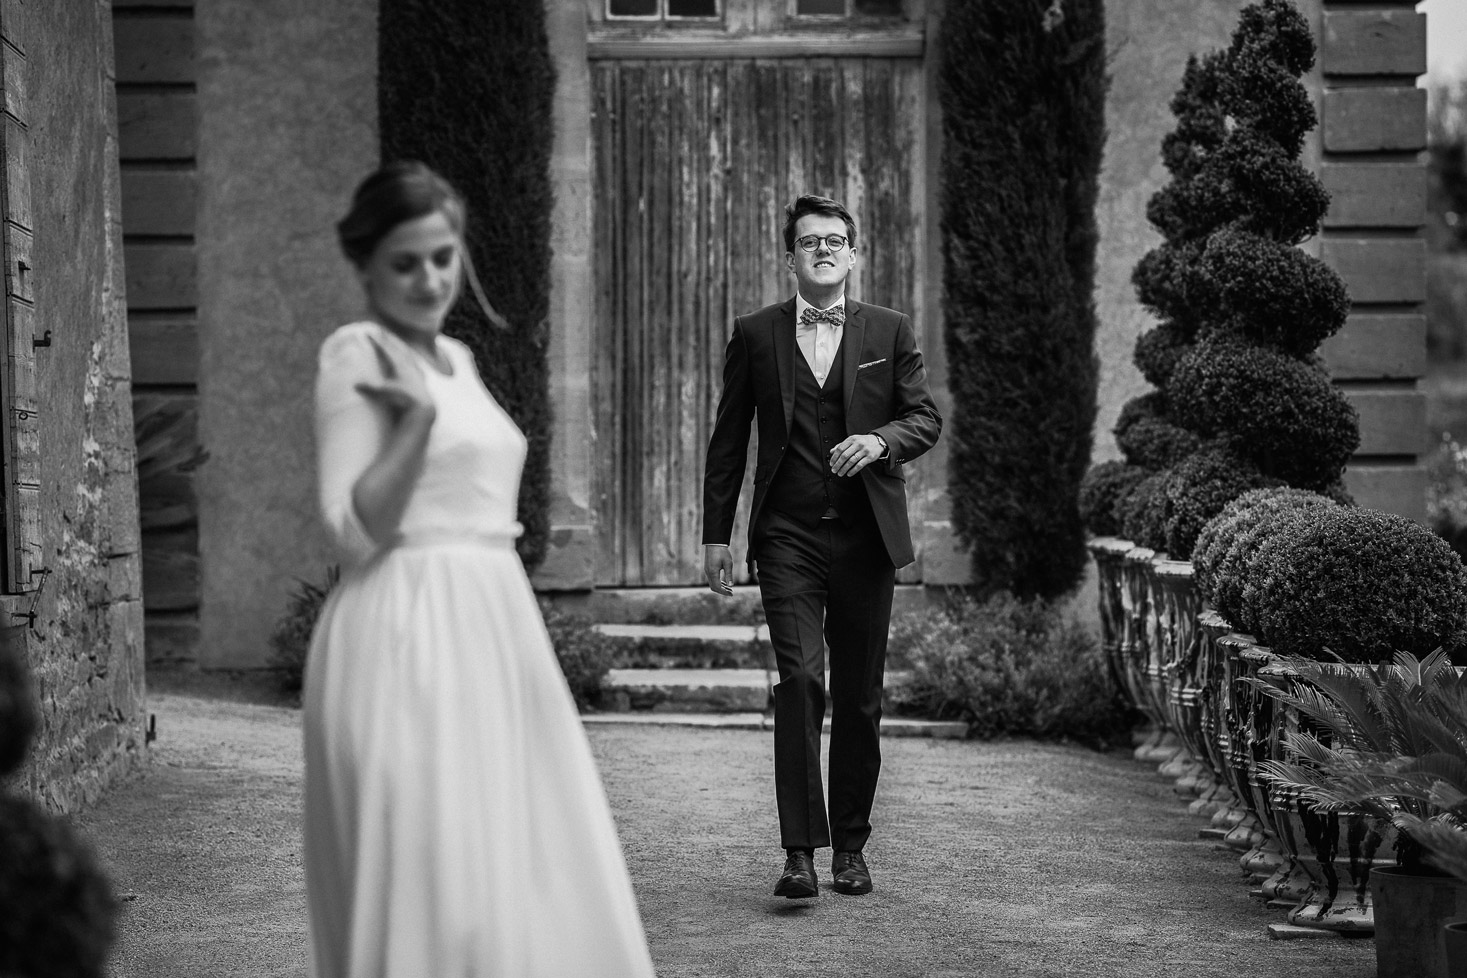 Reportage photo de mariage à Lyon - Manoir de la Garde. Photo de couple